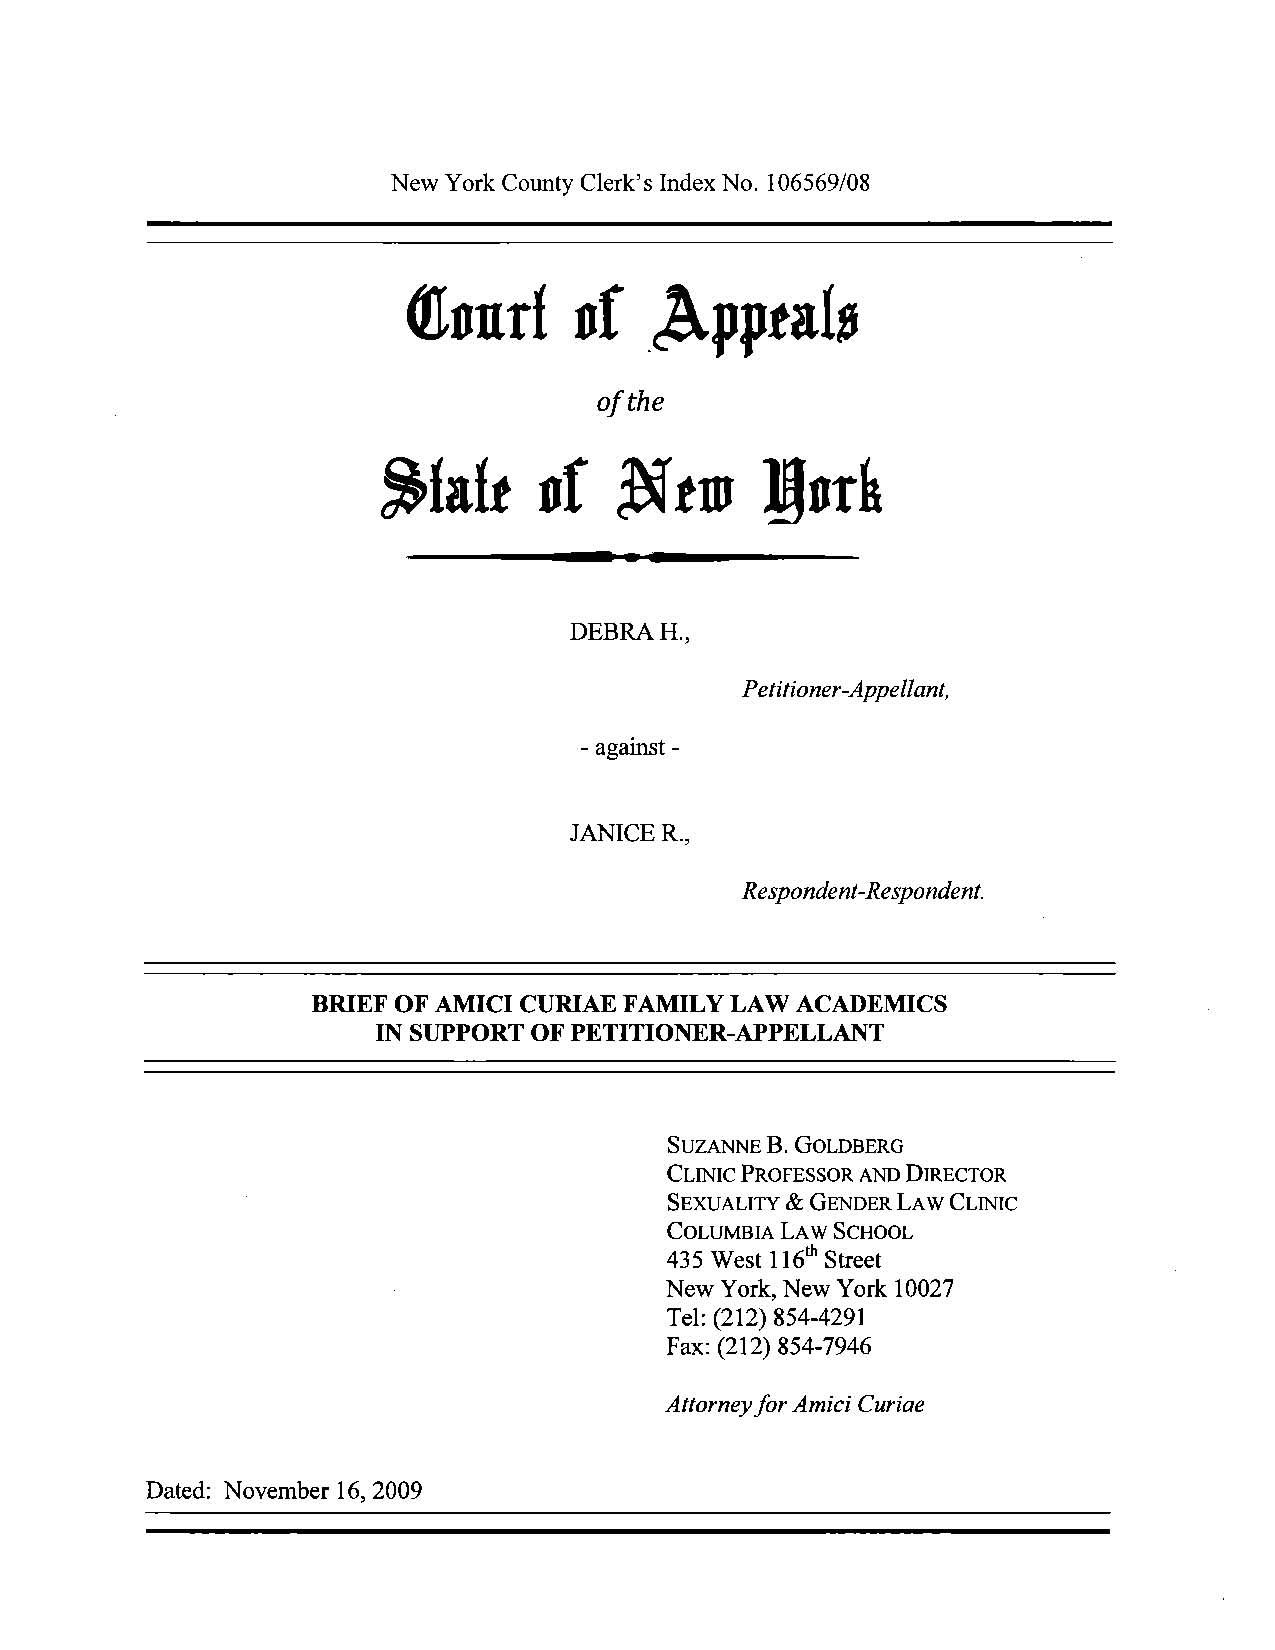 Brief Formal Legal Document Written Up By An Attorney For The